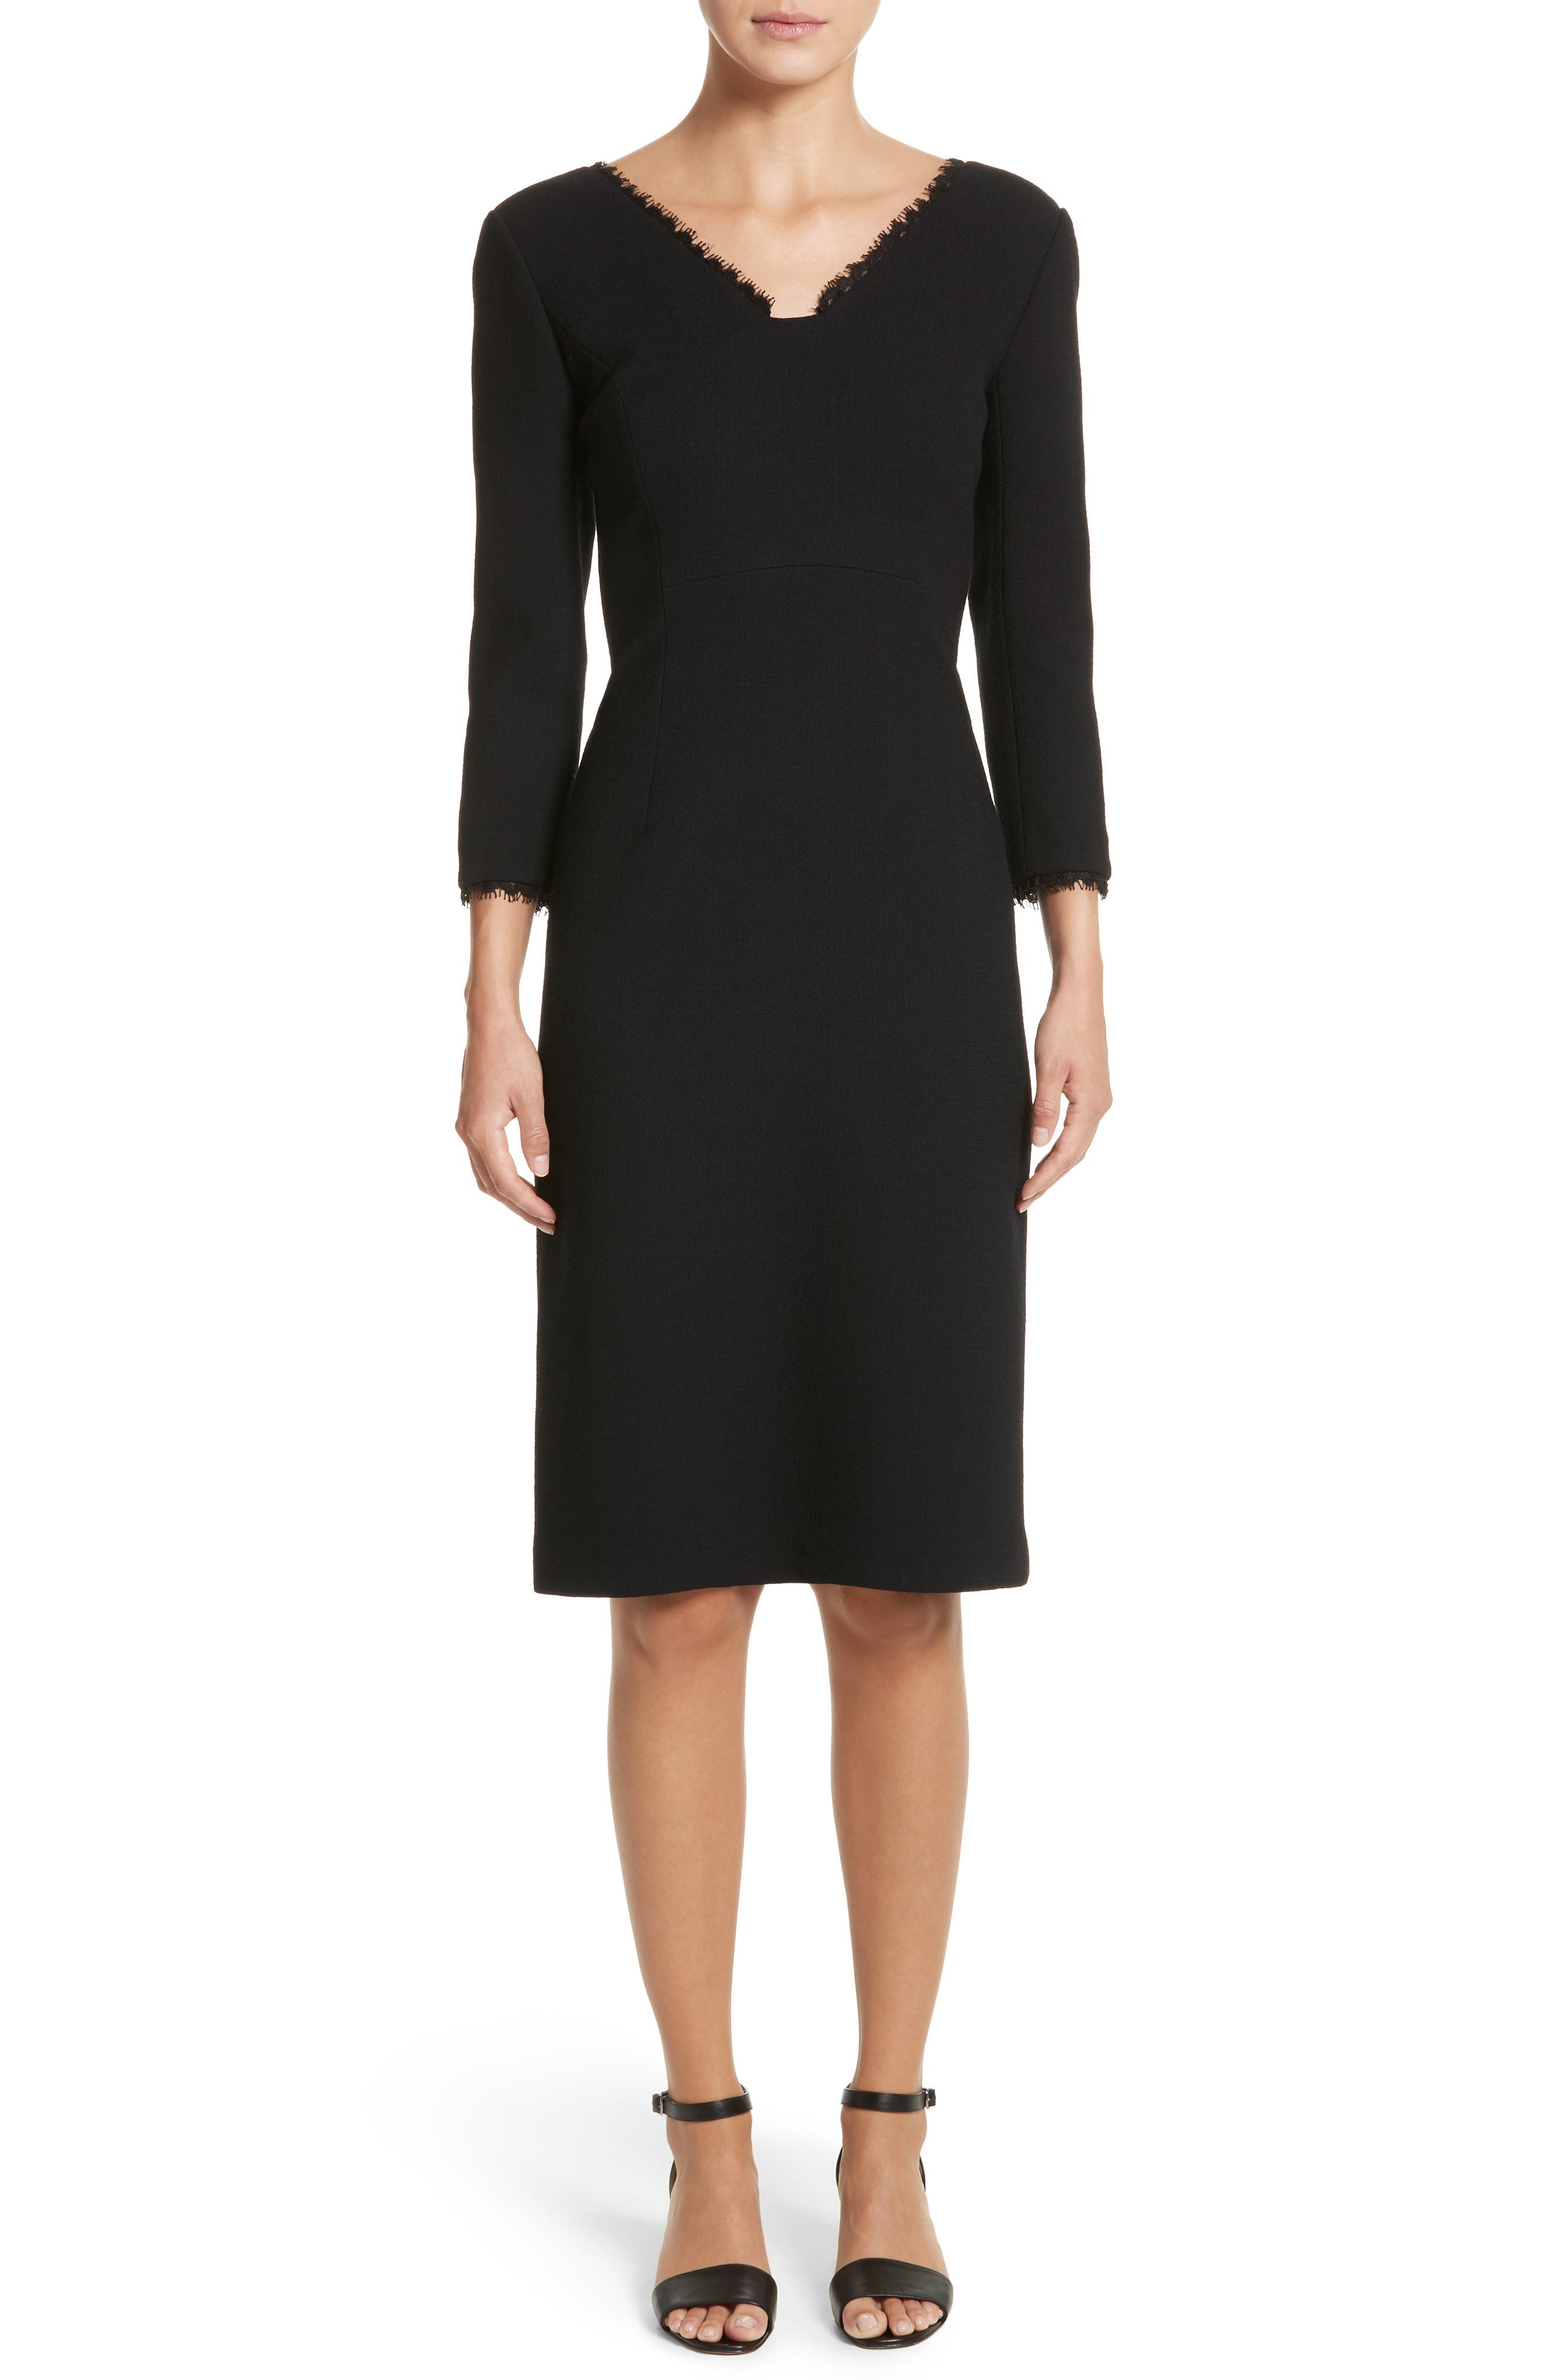 Shandy Lace Trim Wool Dress,                         Main,                         color, 001